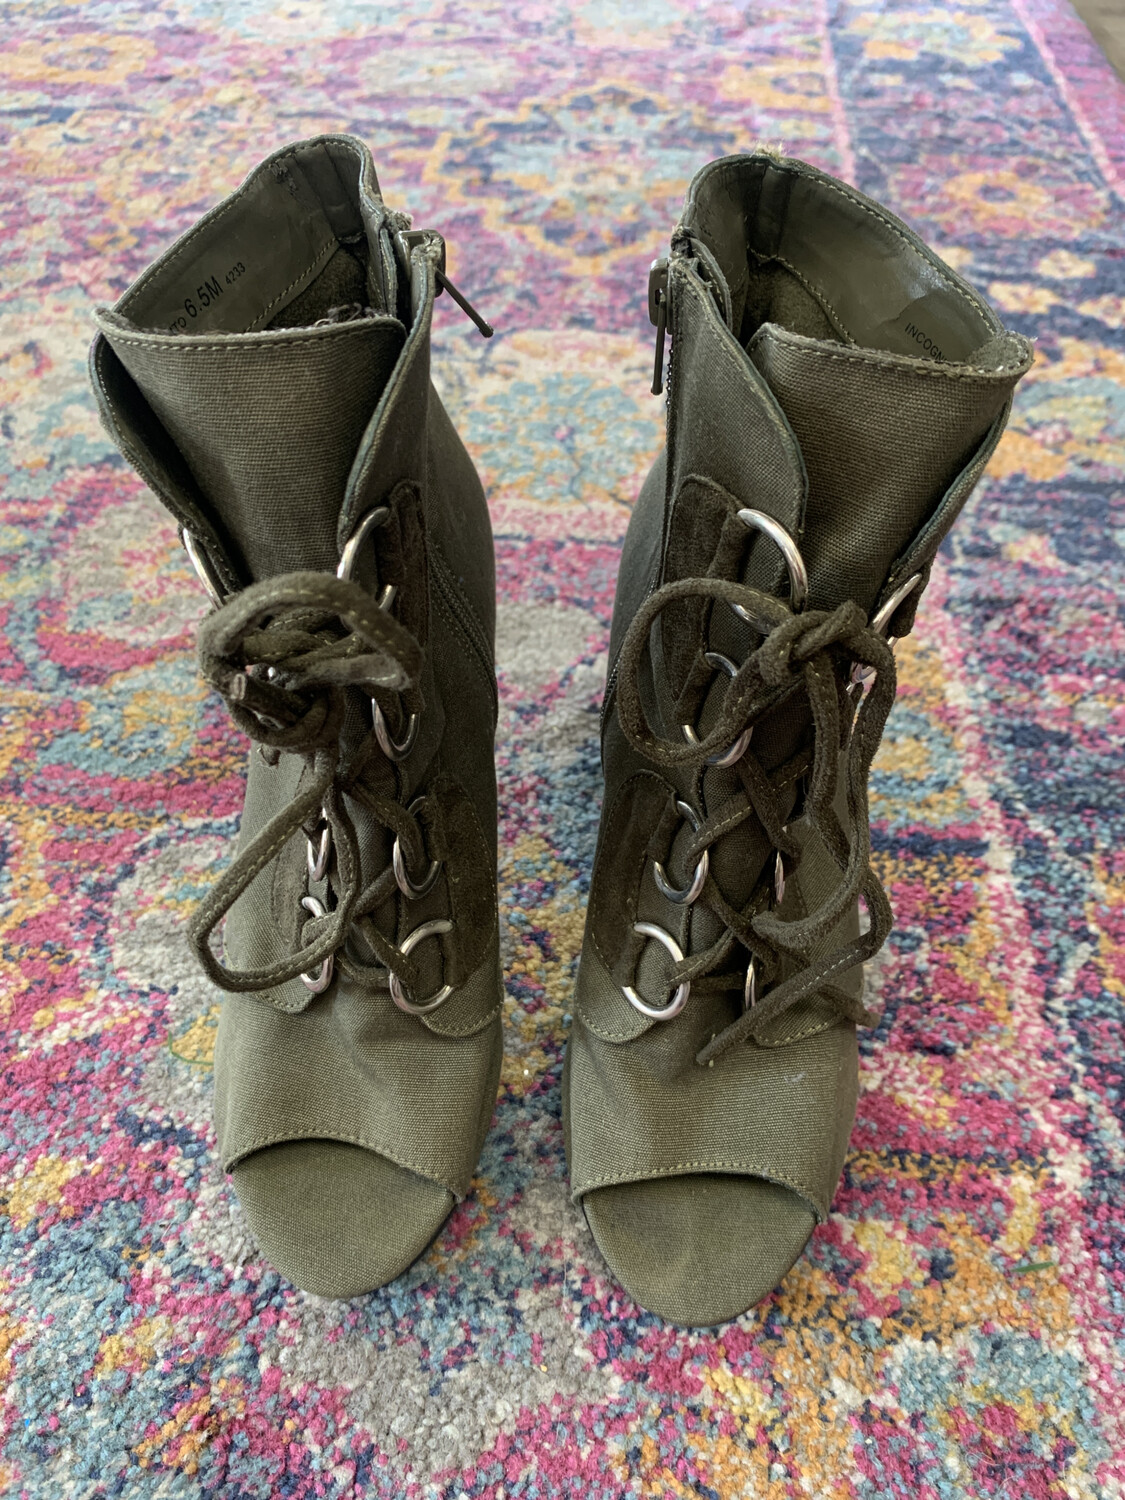 Chinese Laundry Olive Lace Up Heels - Size 6.5